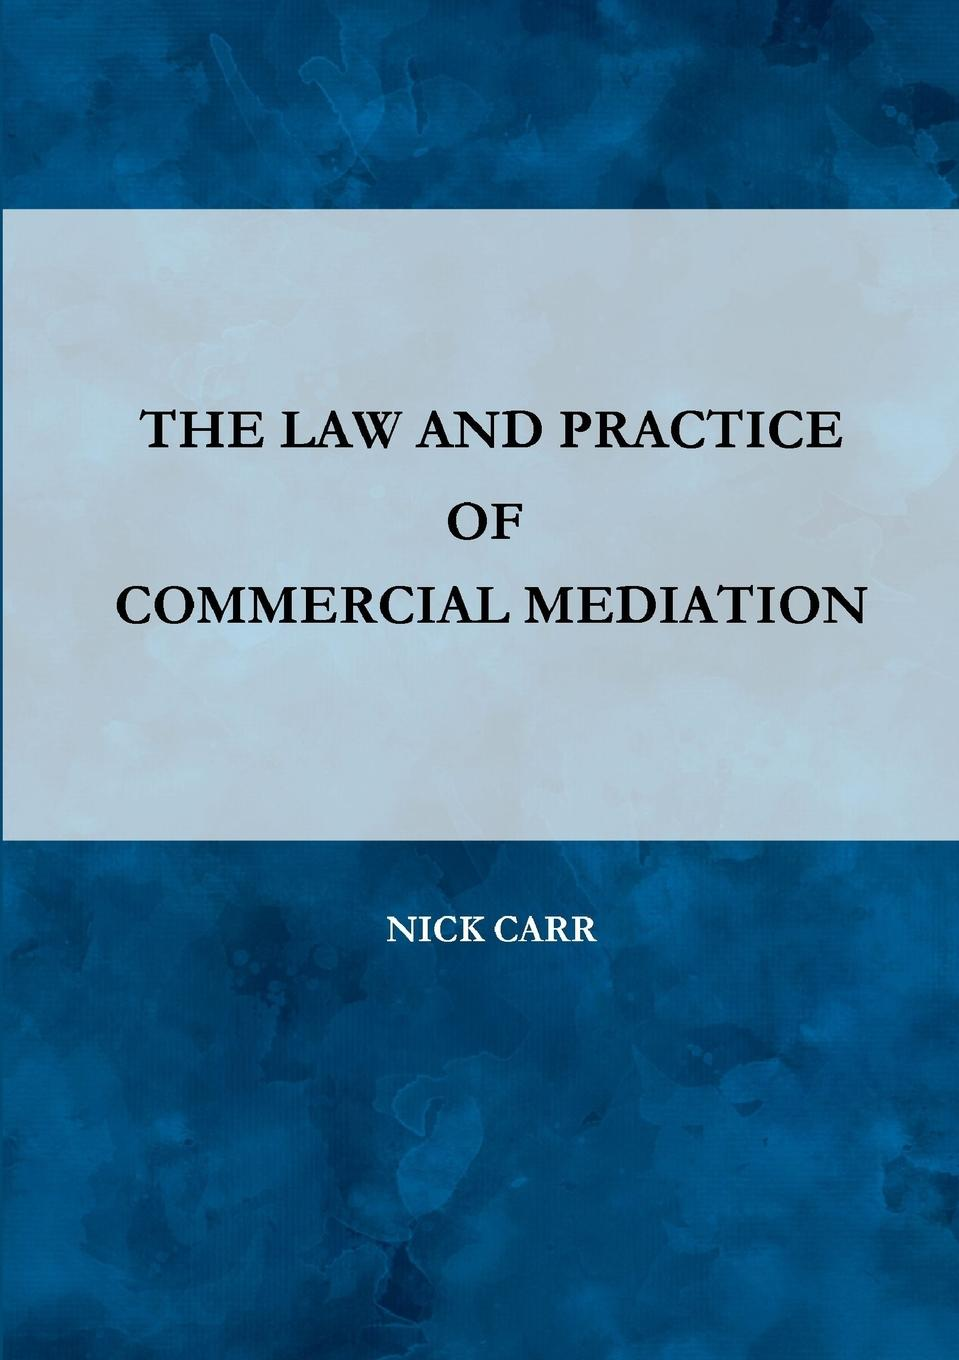 Nick Carr The Law and Practice of Commercial Mediation guanglei hong causality in a social world moderation mediation and spill over